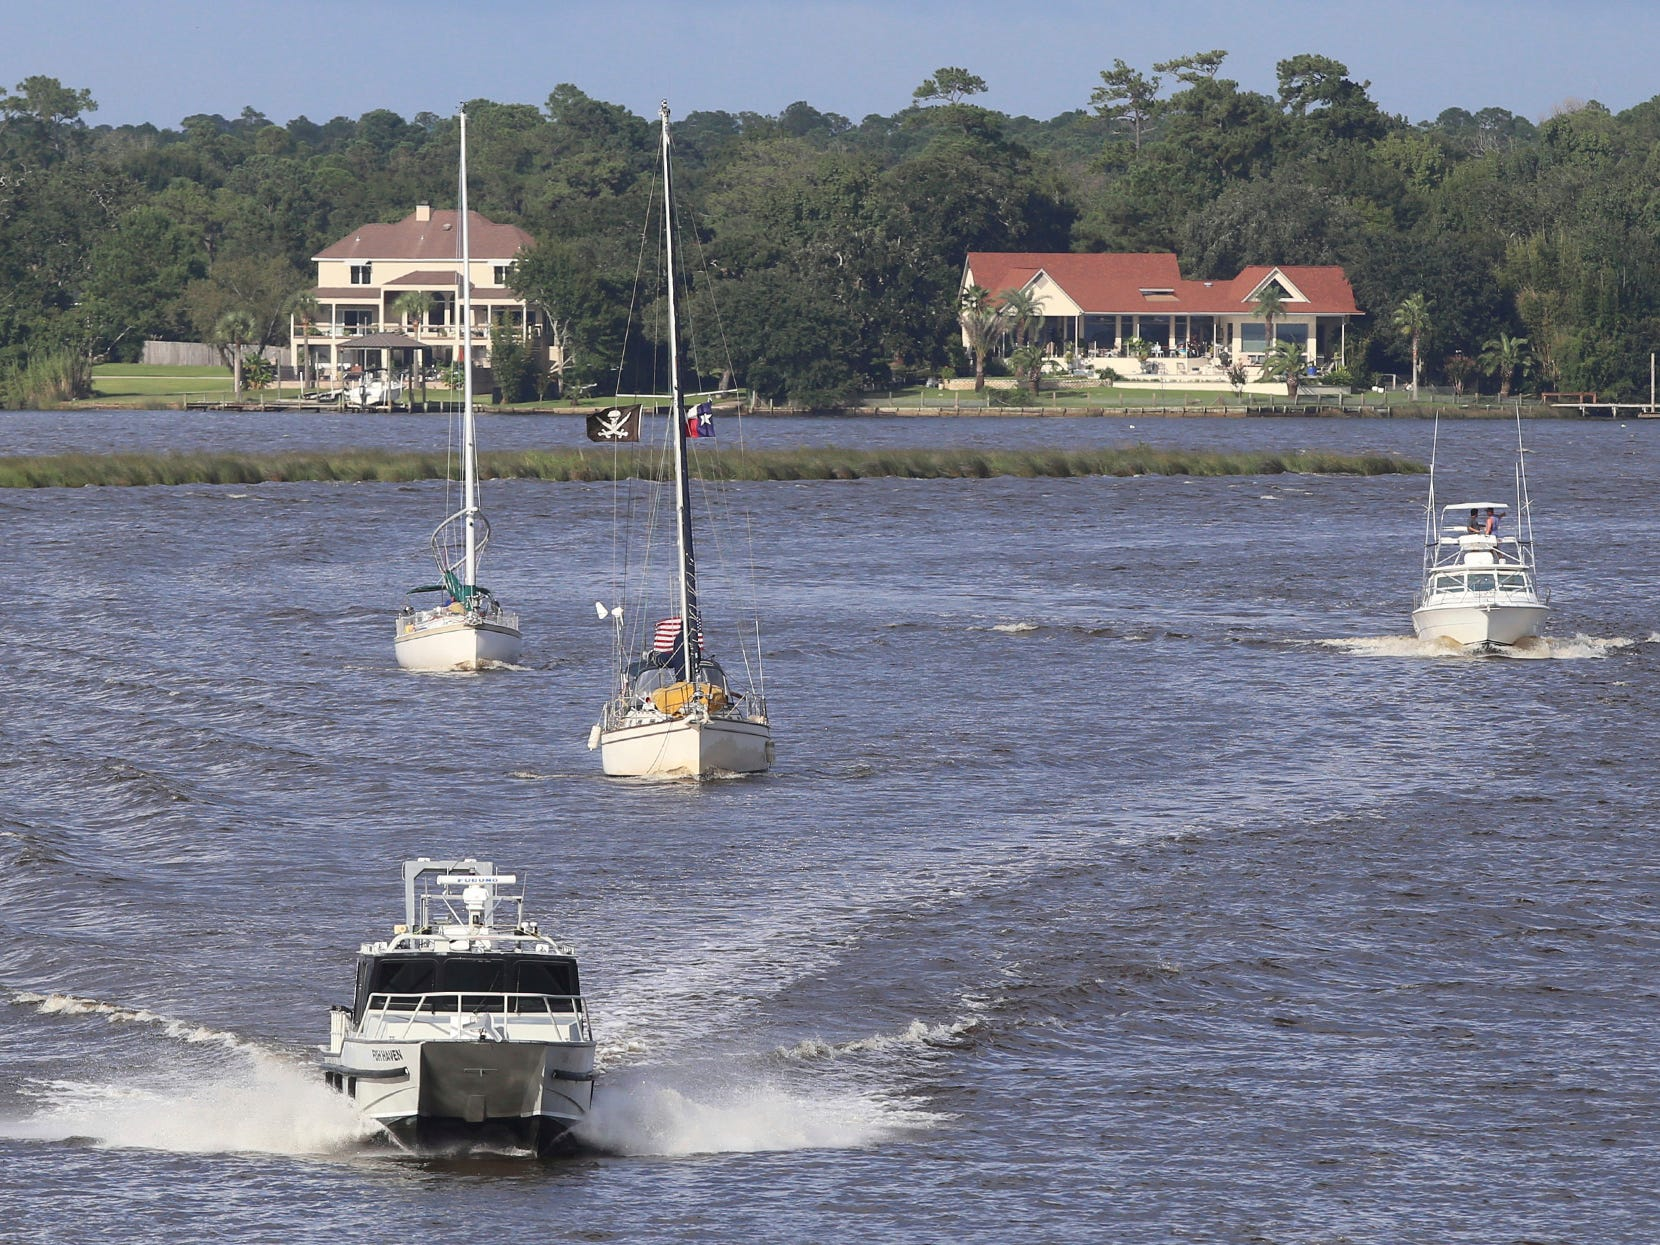 Boats make their way across Biloxi Back Bay in Biloxi, Miss.,as they evacuate to safe harbor, Sept. 3, 2018. Tropical Storm Gordon is expected to make landfall in Mississippi on Tuesday, possibly as a Category 1 hurricane. (John Fitzhugh/The Sun Herald via AP) ORG XMIT: MSGUL121